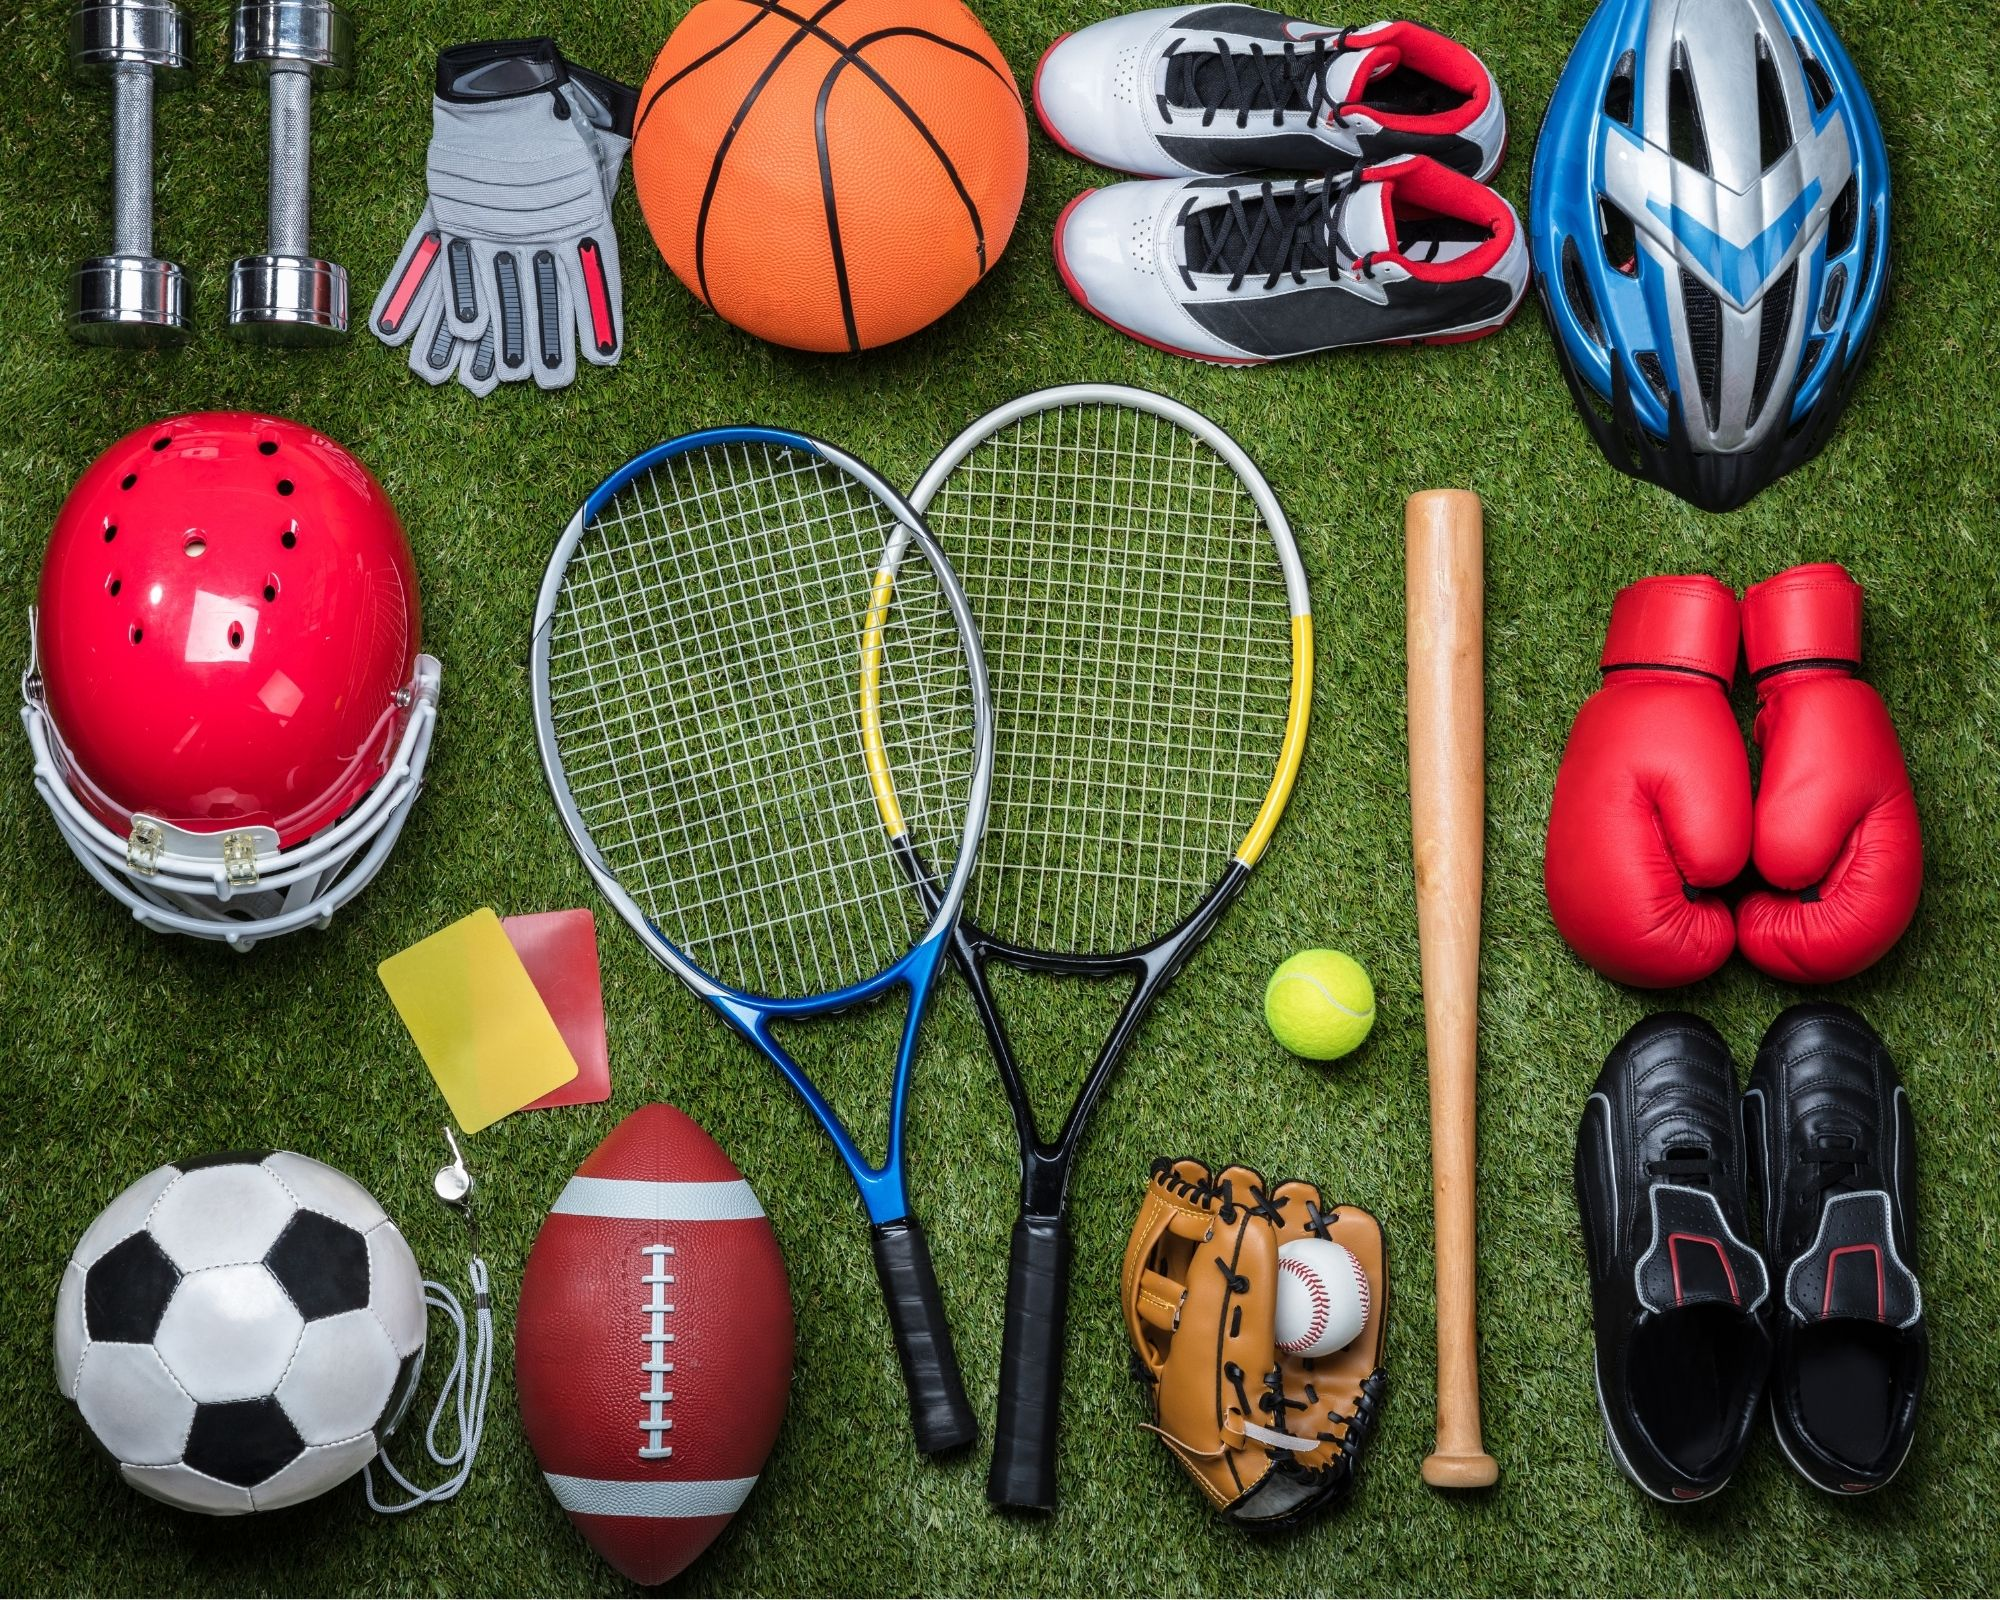 Sports Equipment - Used as example of one thing that impacts our sleeping